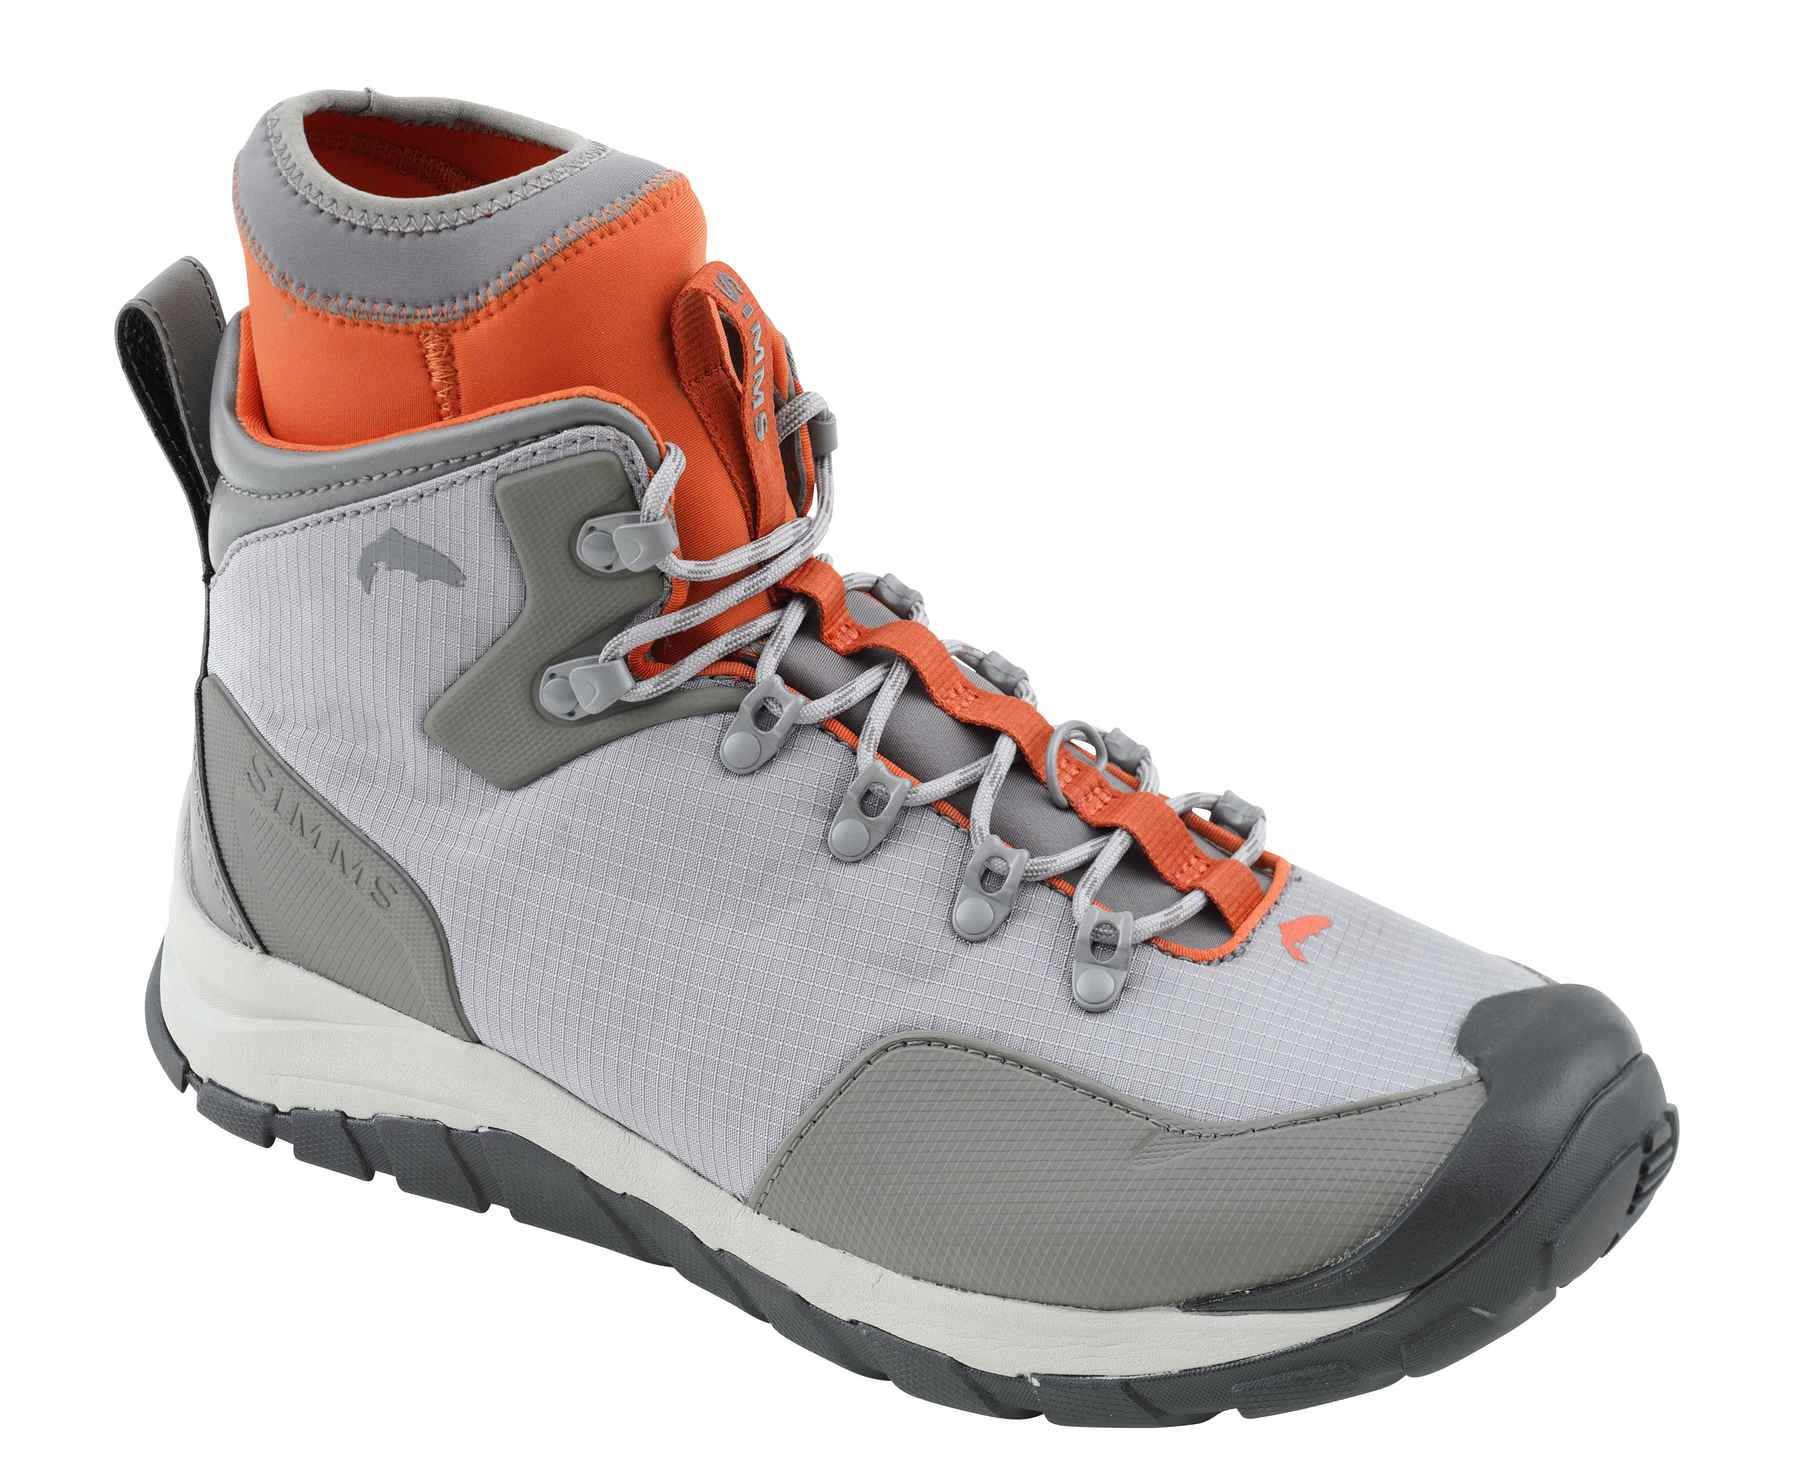 Simms Finally Bringing Wet Wading Boots Loads More To